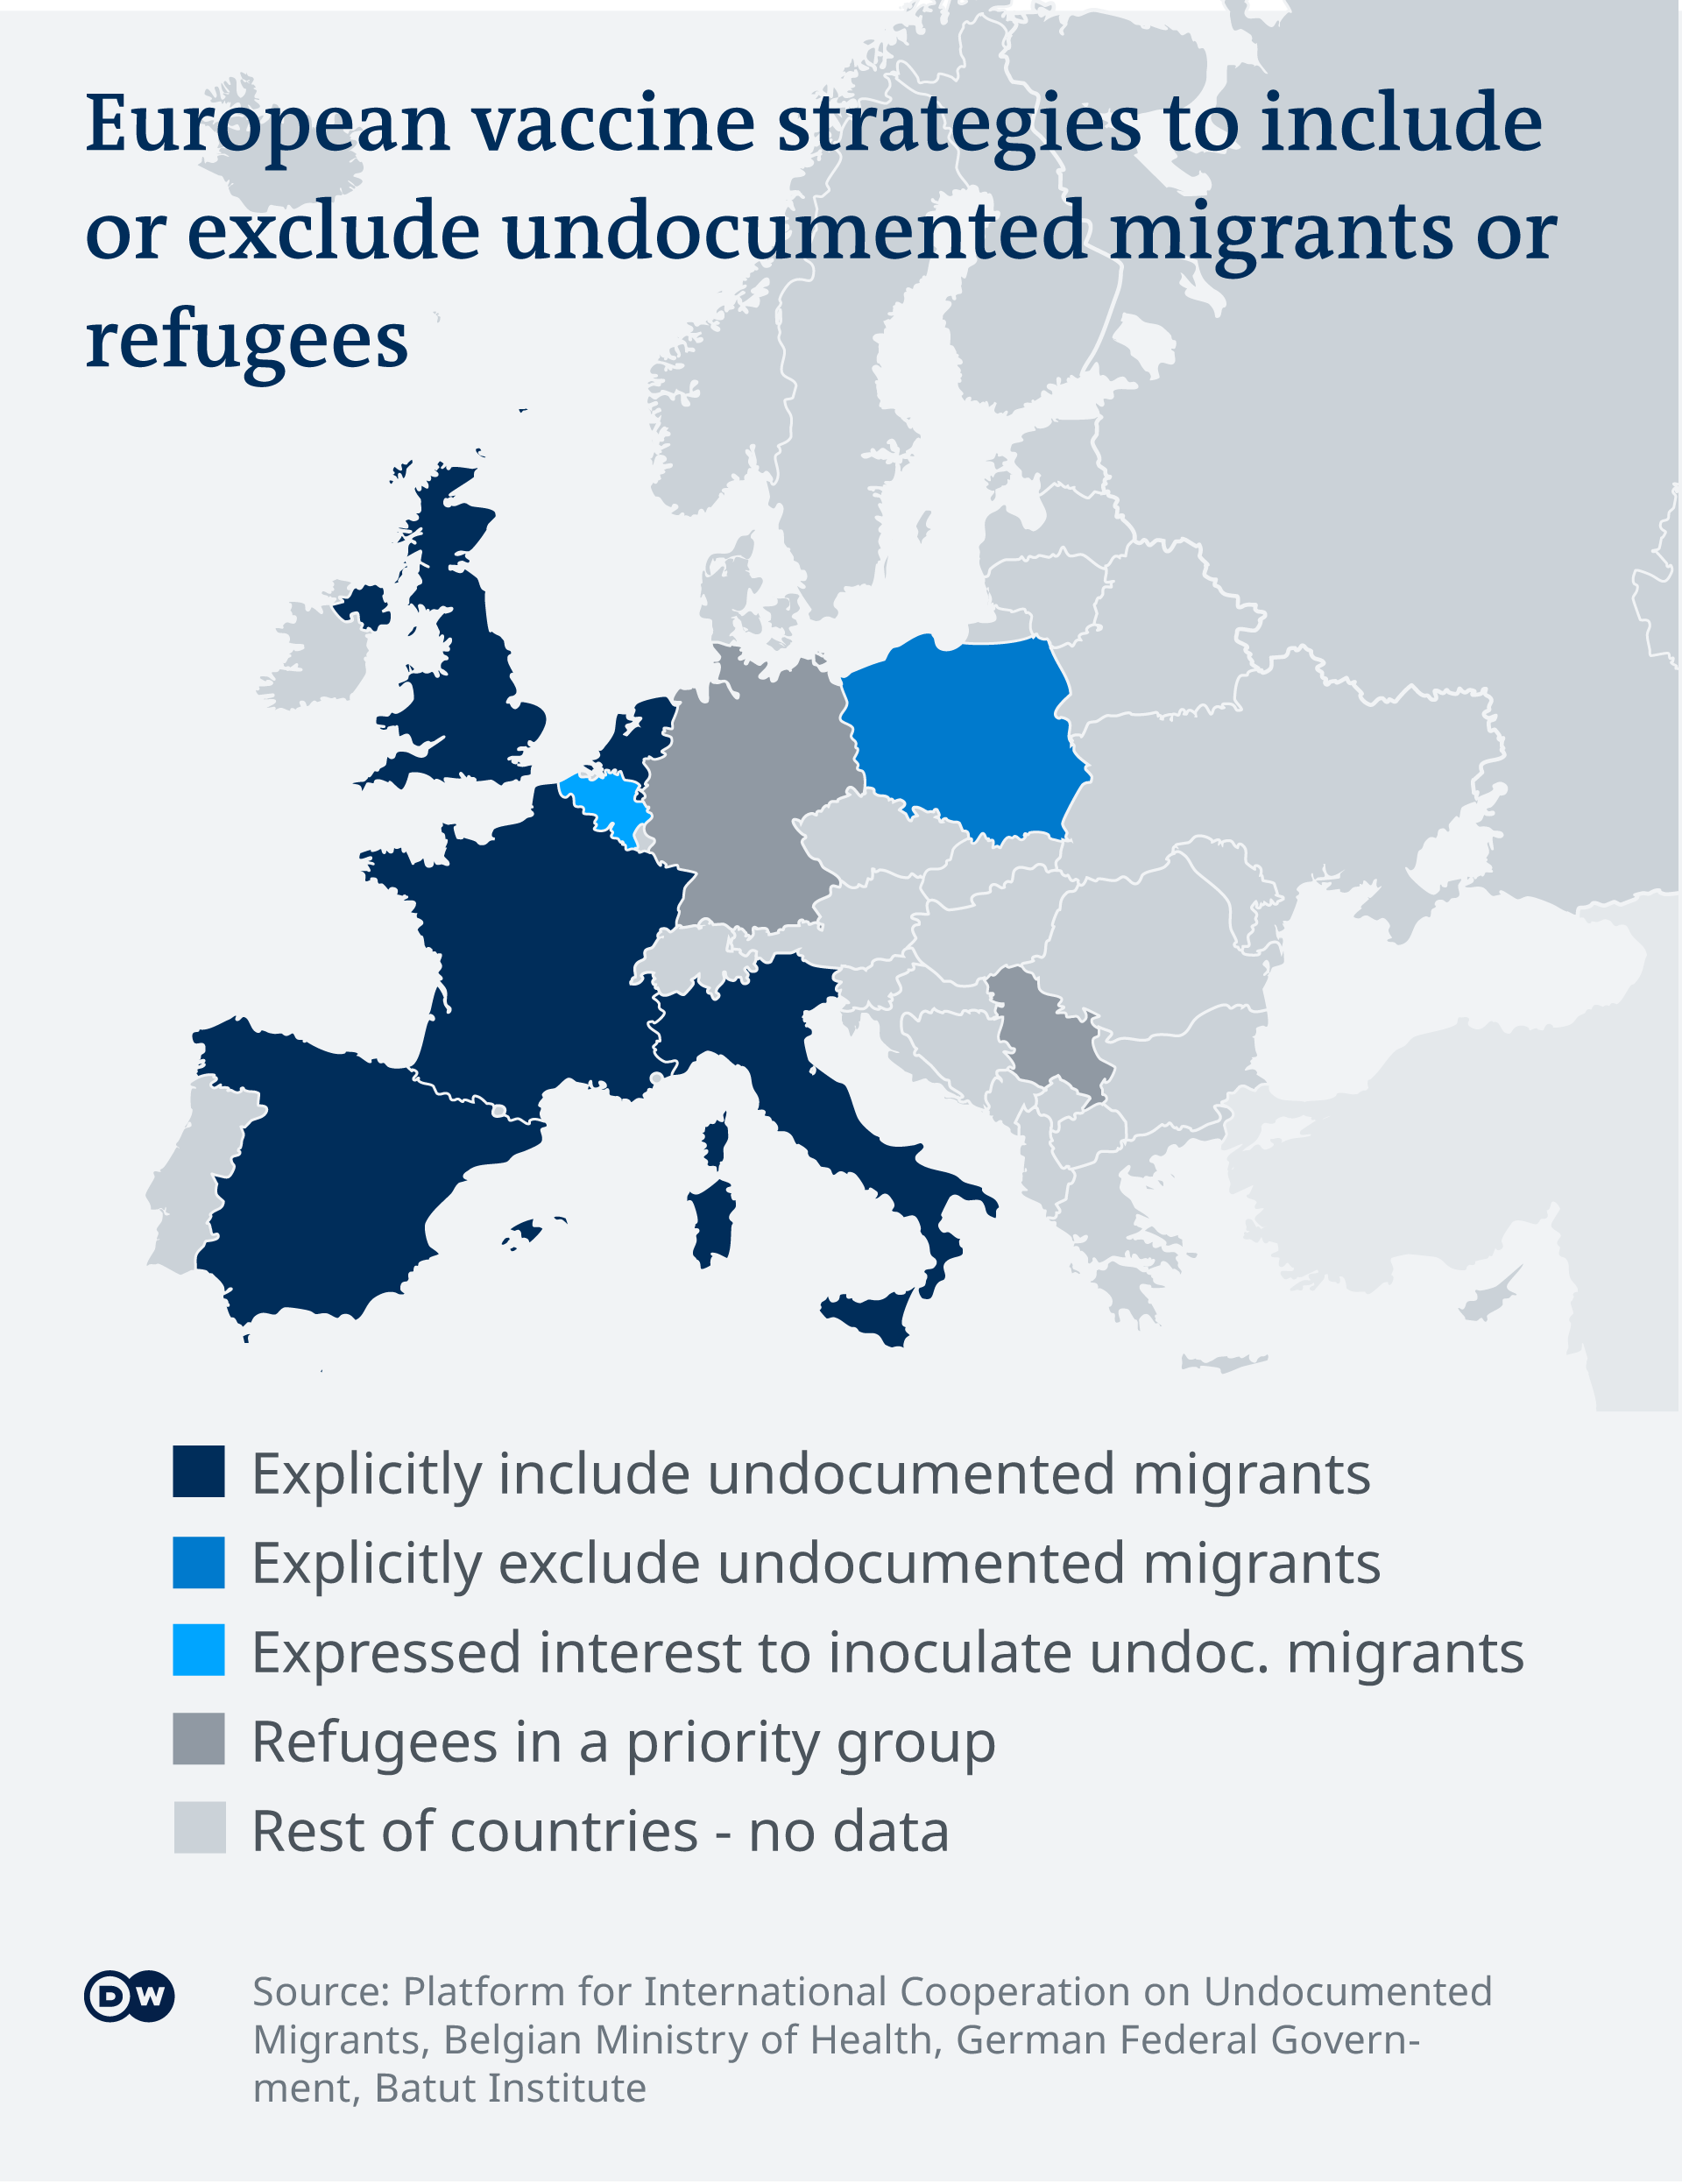 Infographic showing countries with strategies for vaccinating refugees and undocumented migrants and those that do not